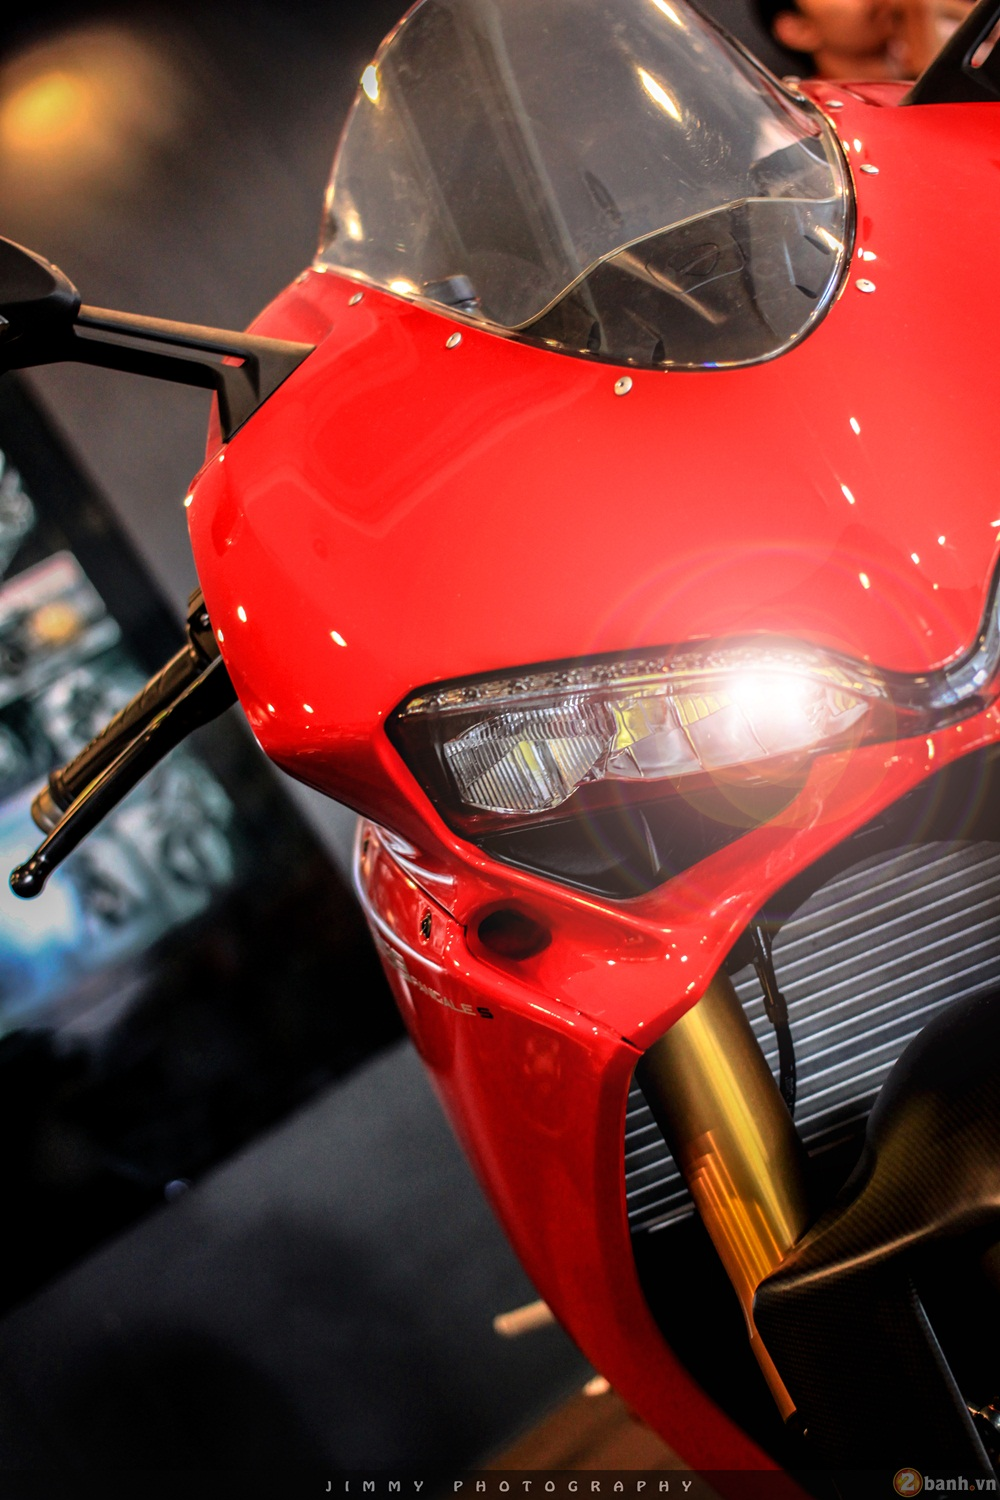 Chan dai Italy 1299 Panigale S chiec Super Sport gon nhe nhat hien nay - 8